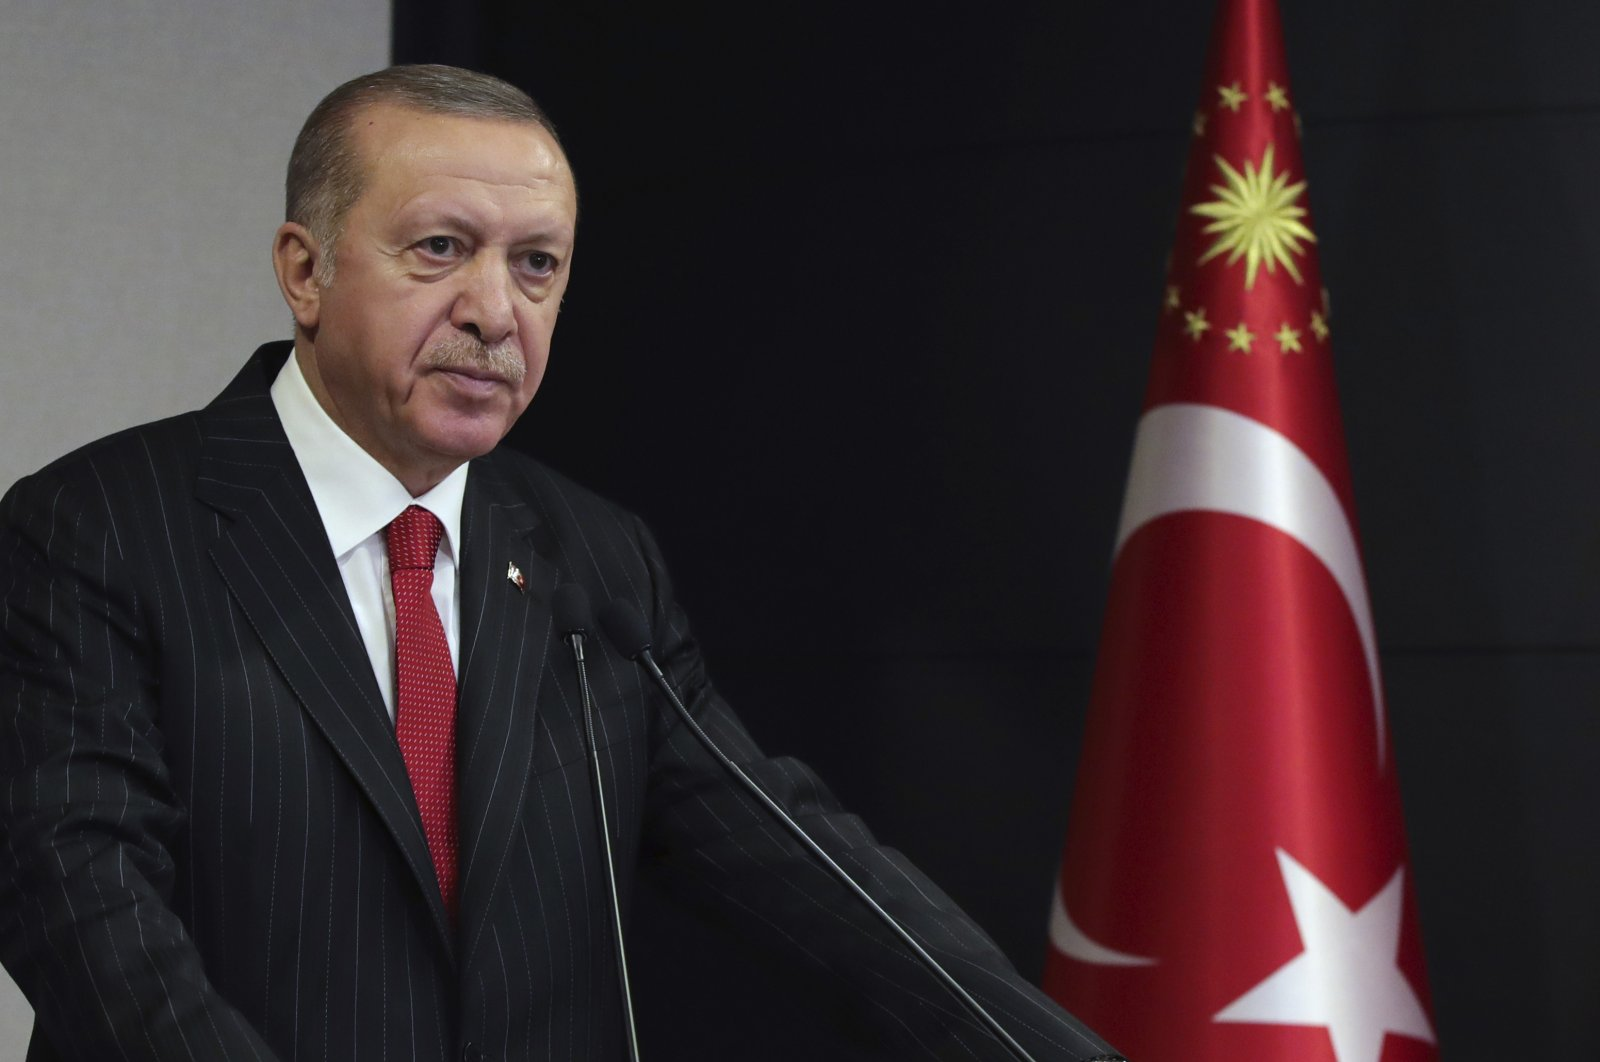 President Recep Tayyip Erdogan addresses the nation regarding the coronavirus outbreak, in Ankara, Turkey, April 6, 2020. (AP Photo)